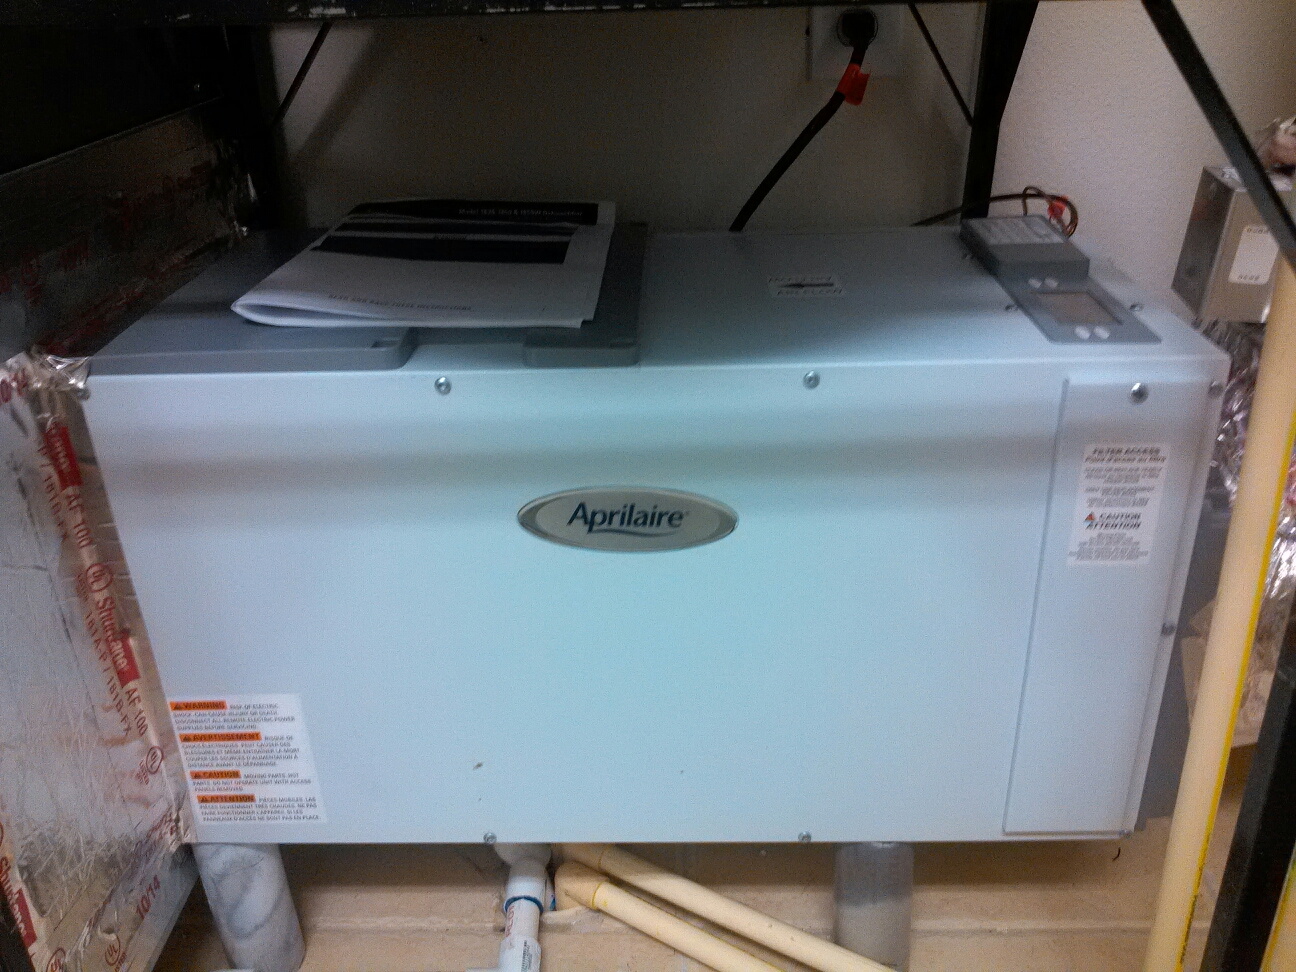 Ponte Vedra Beach, FL - Installation of a new Aprilaire dehumidifier